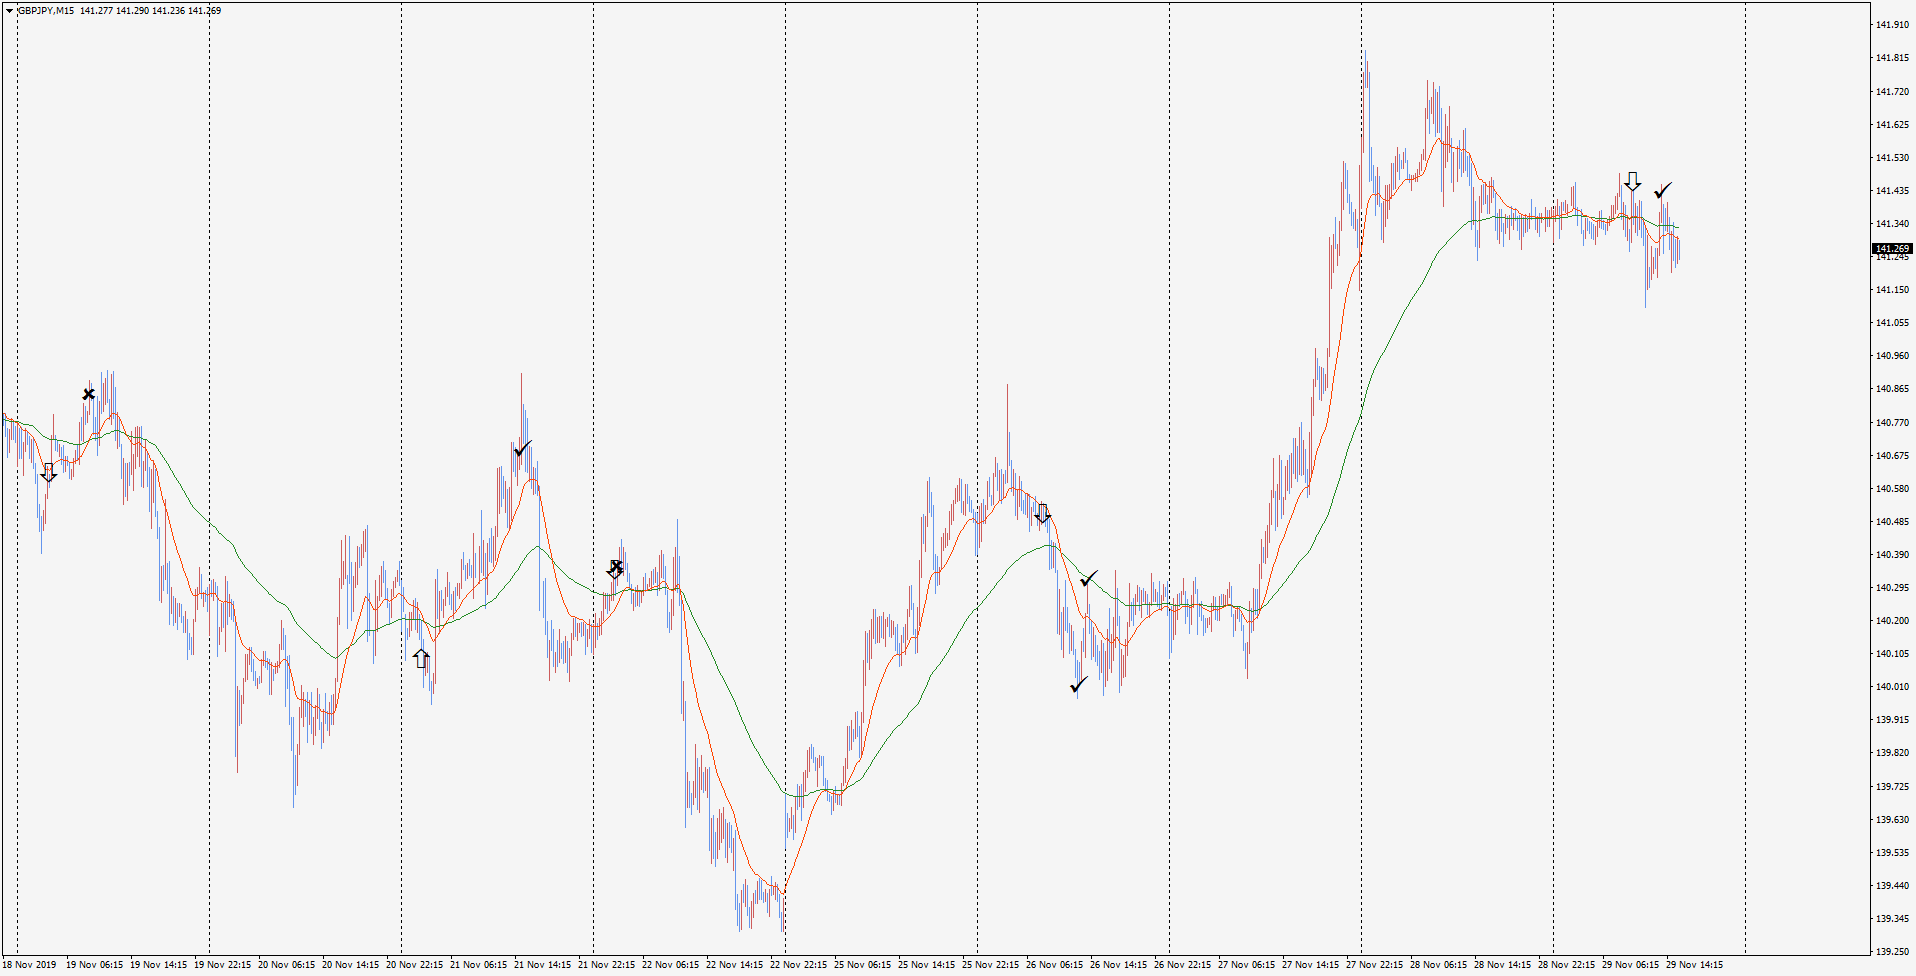 19-11-29-gbpjpy-m15-tradexfin-limited.png